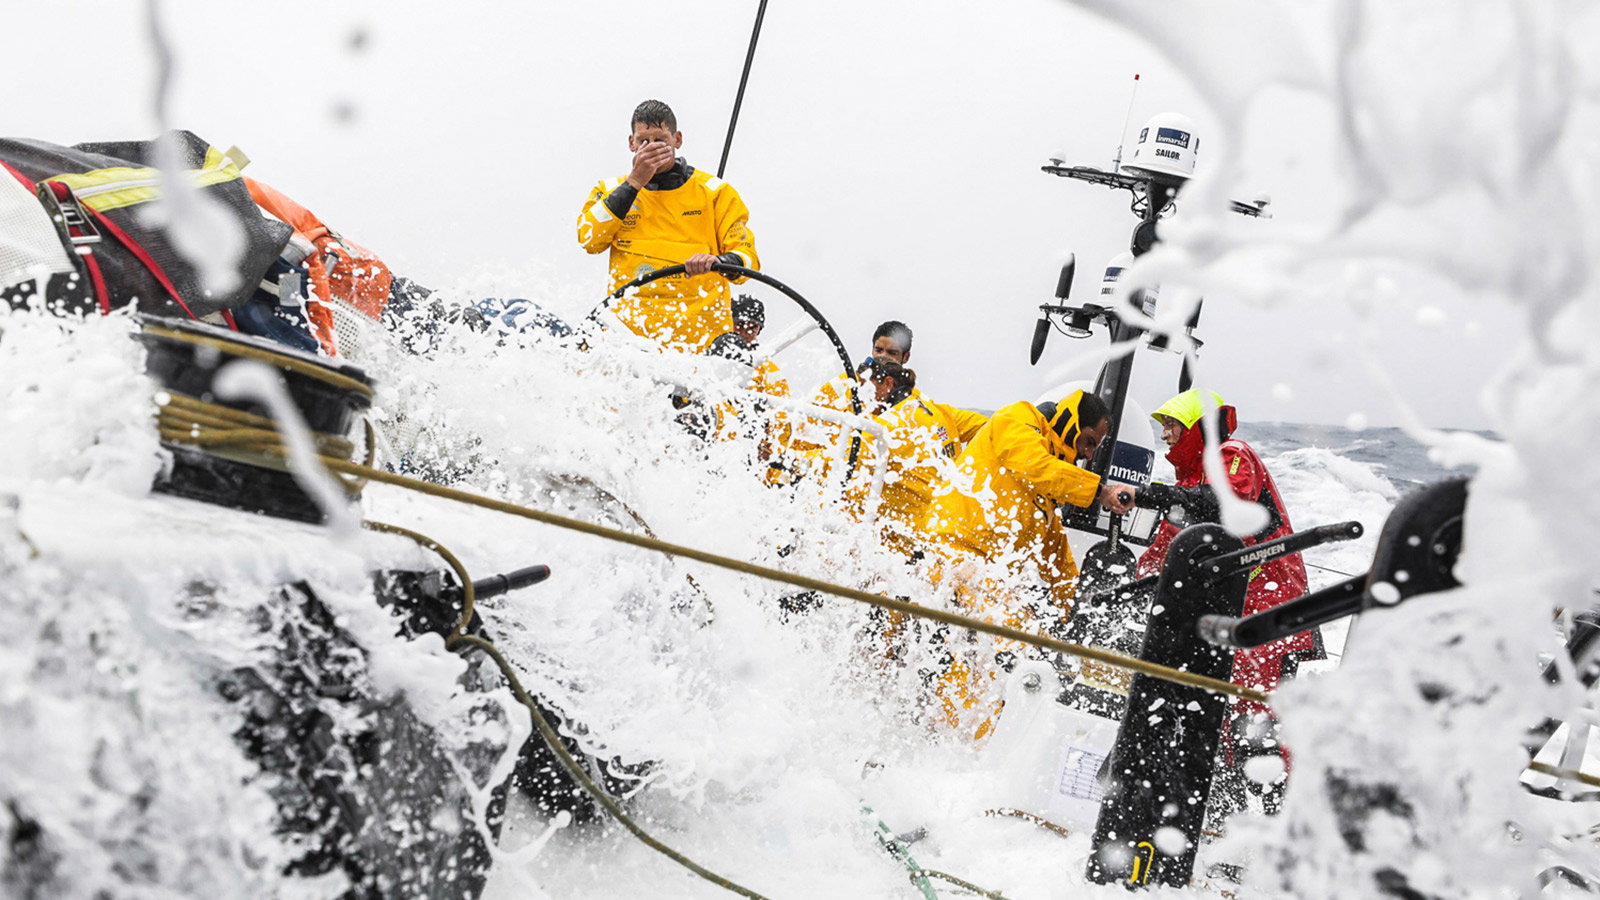 VOLVO OCEAN RACE - As official suppliers to both the Volvo Ocean Race and the Boatyard, Harken plays an integral 360-degree role in this relentless 45,000 mile competition.